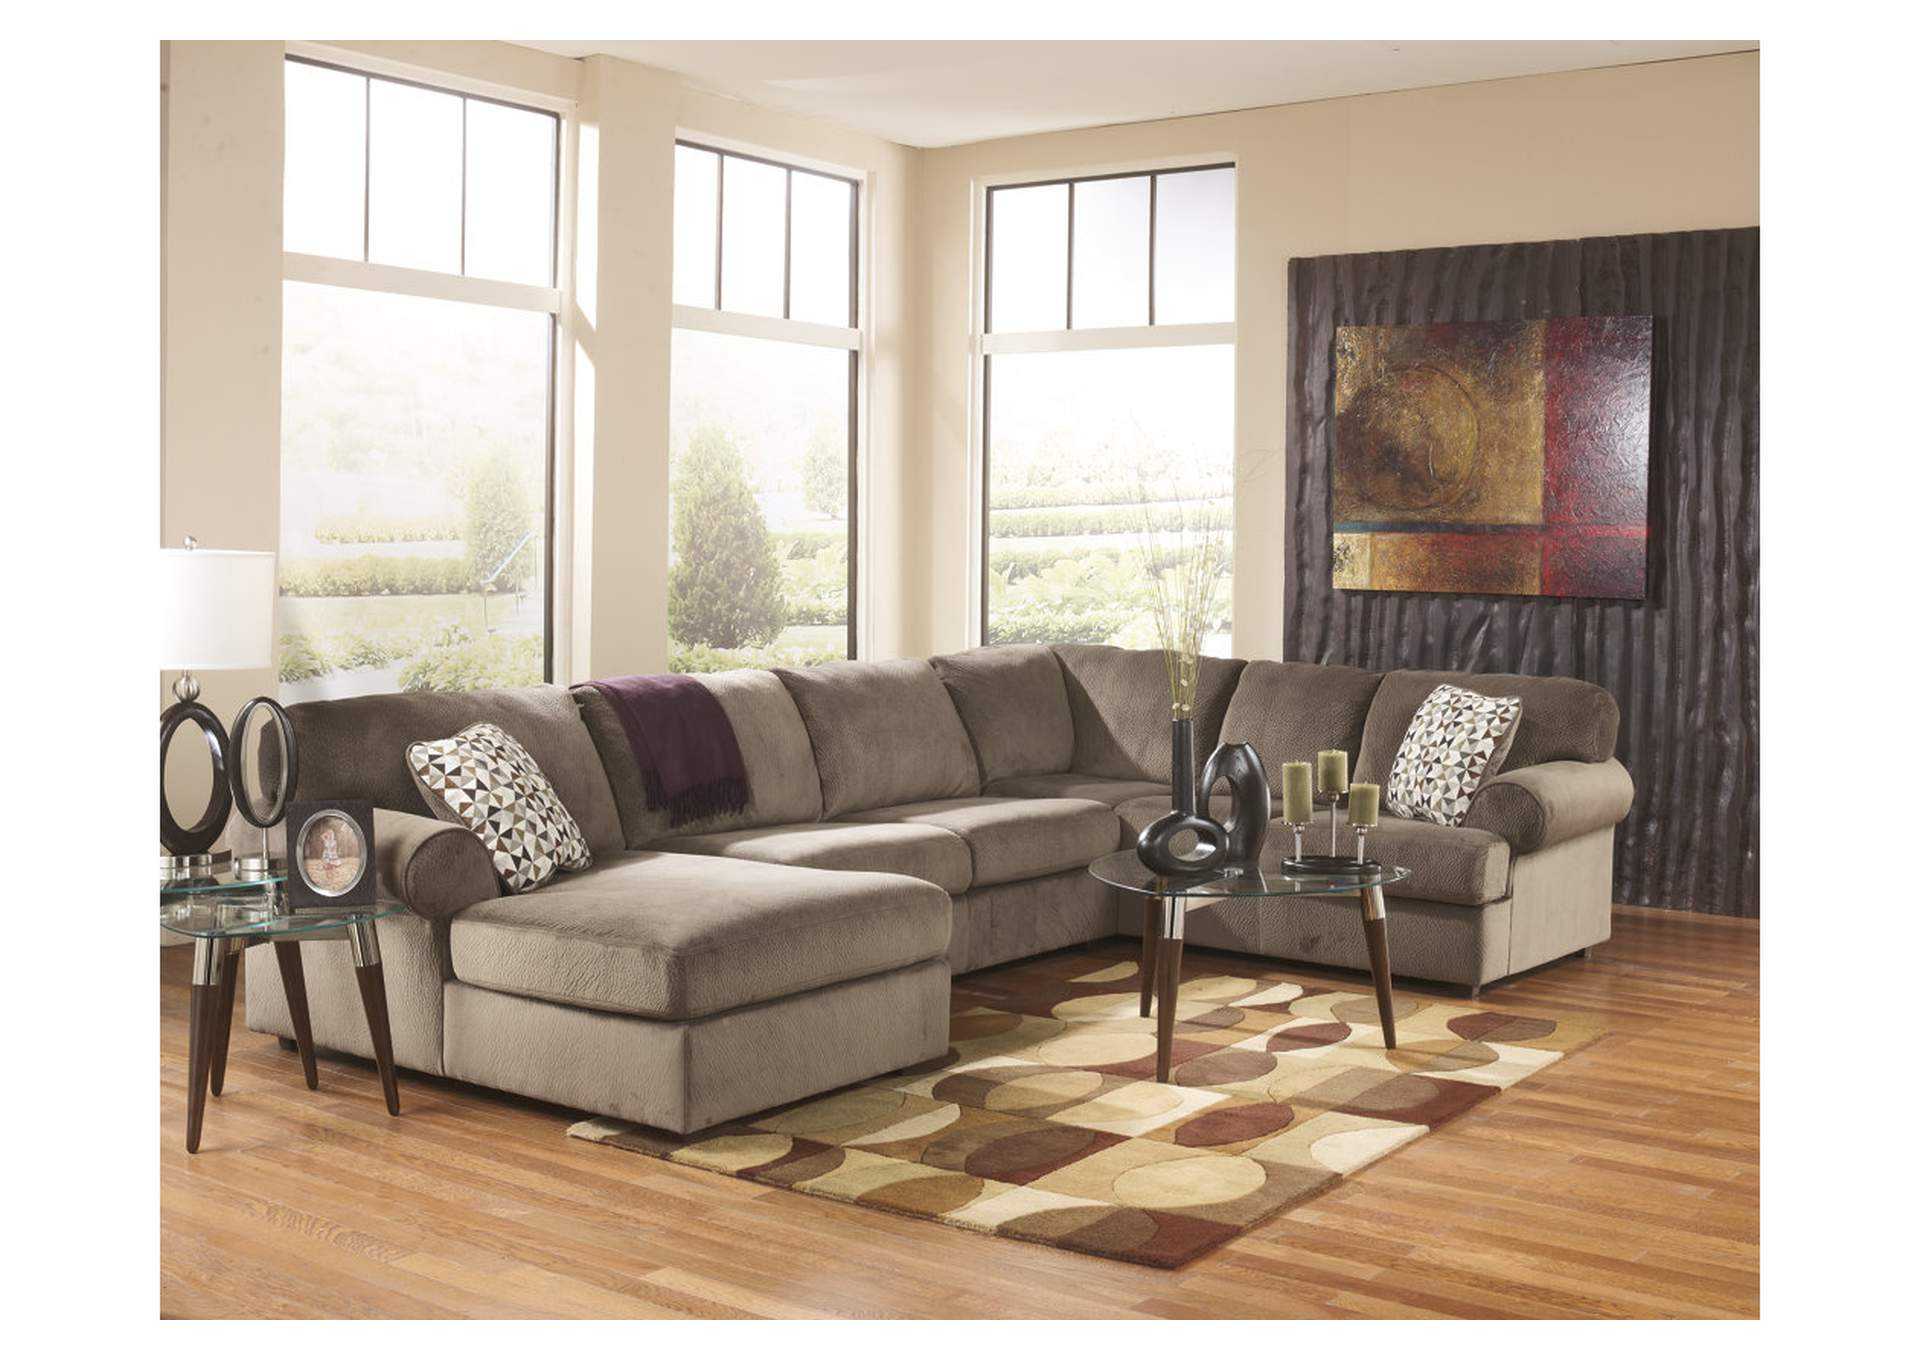 Jessa Place Dune Left Facing Chaise Sectional,Signature Design By Ashley